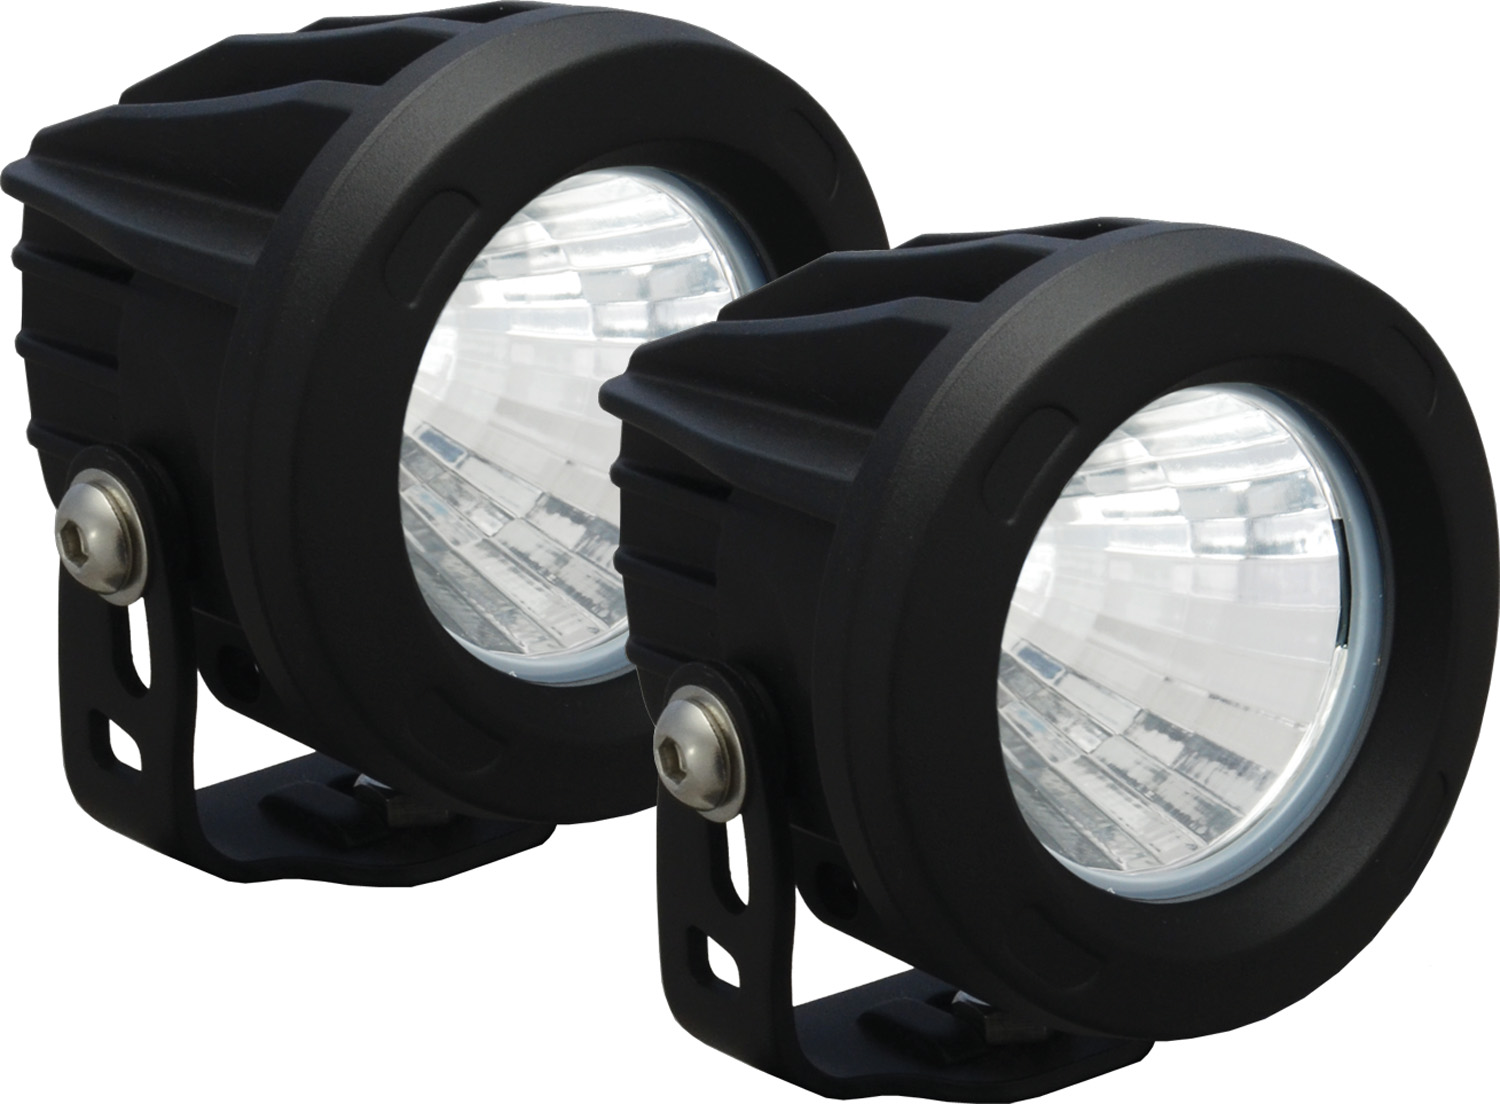 OPTIMUS ROUND BLACK 1 10W LED 20ç MEDIUM KIT OF 2 LIGHTS